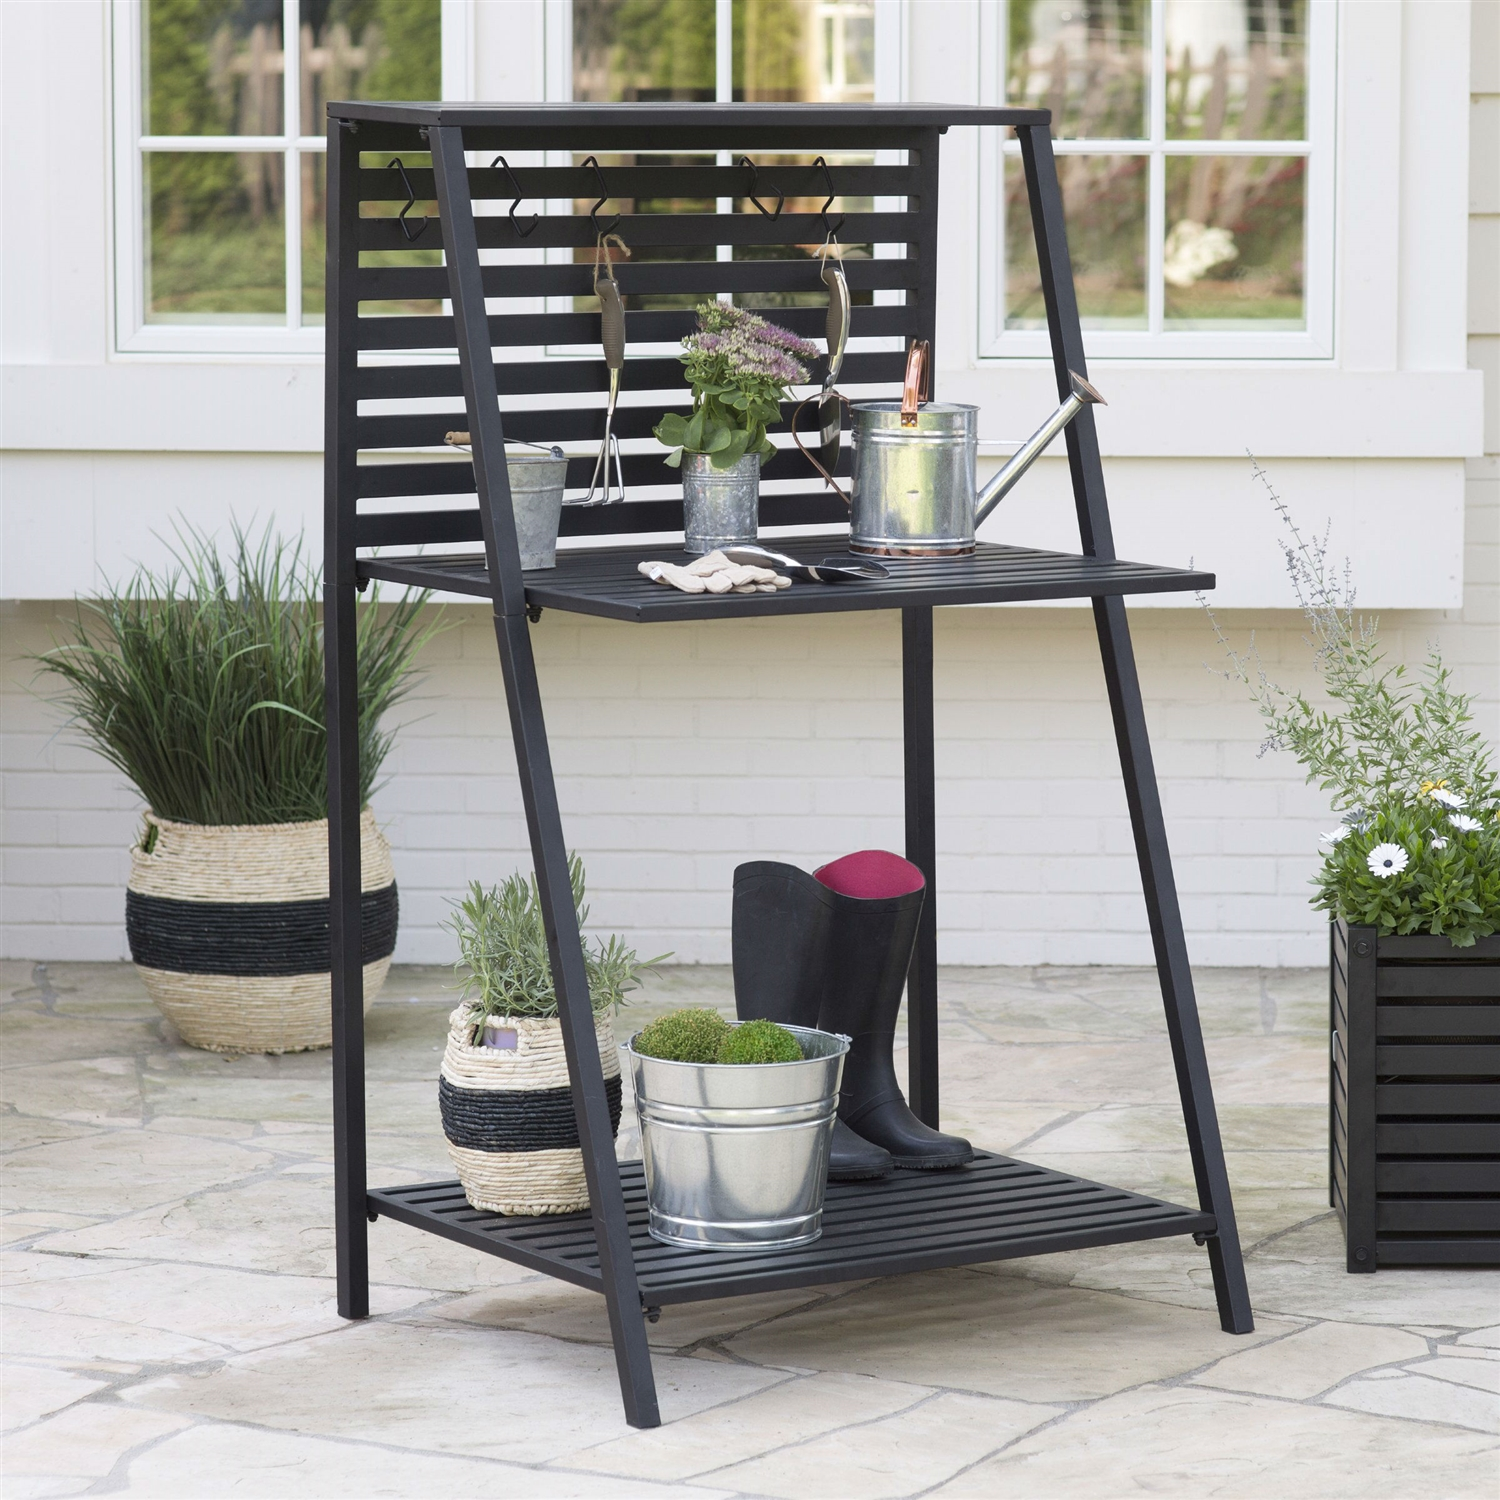 Modern Potting Bench Garden Table Outdoor Bakers Rack Shelving Unit Fastfurnishings